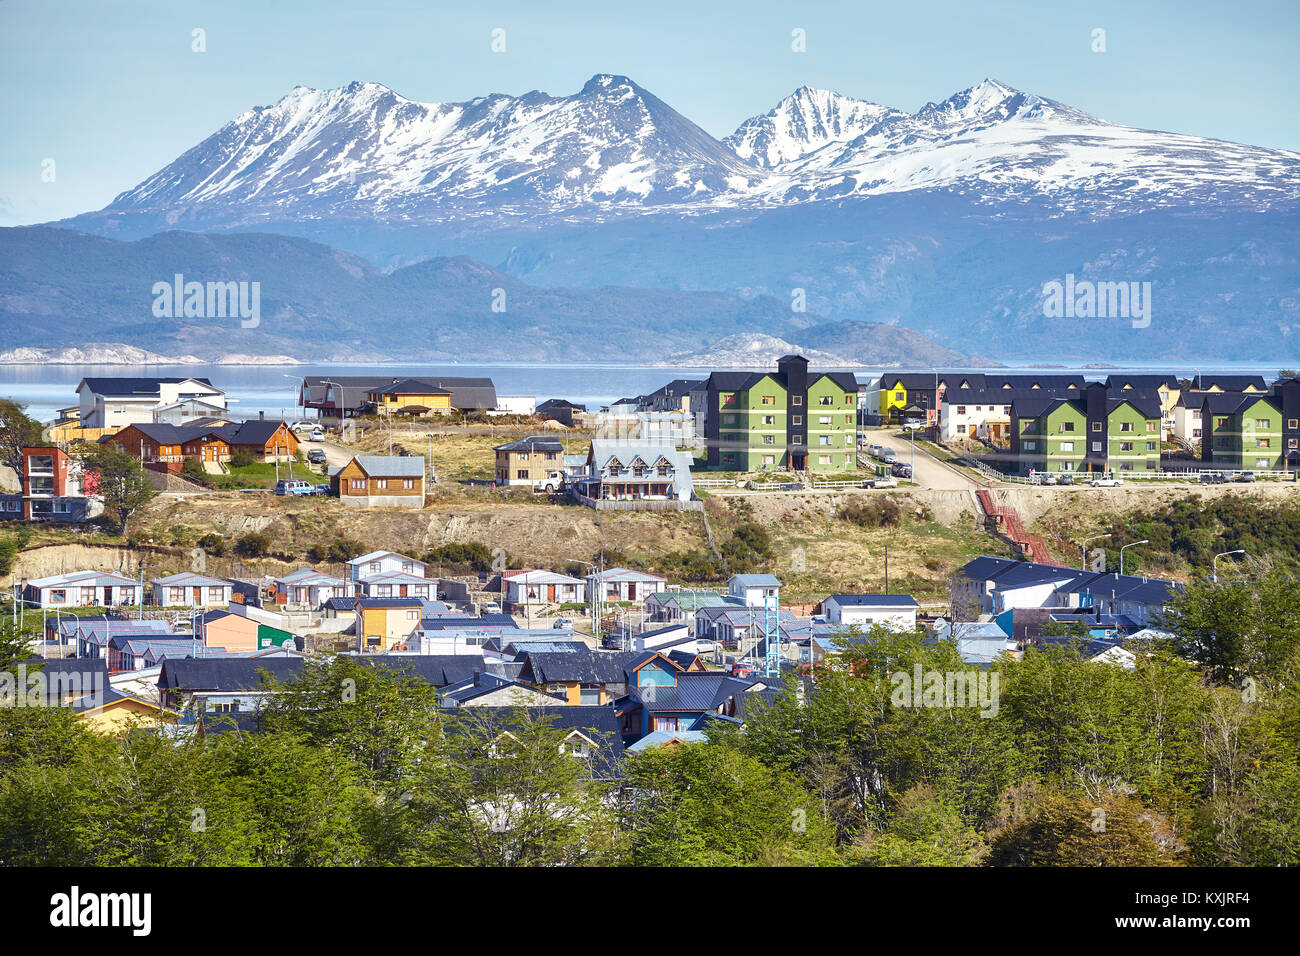 Ushuaia city, capital of Tierra del Fuego, commonly known as the southernmost city in the world, Argentina - Stock Image